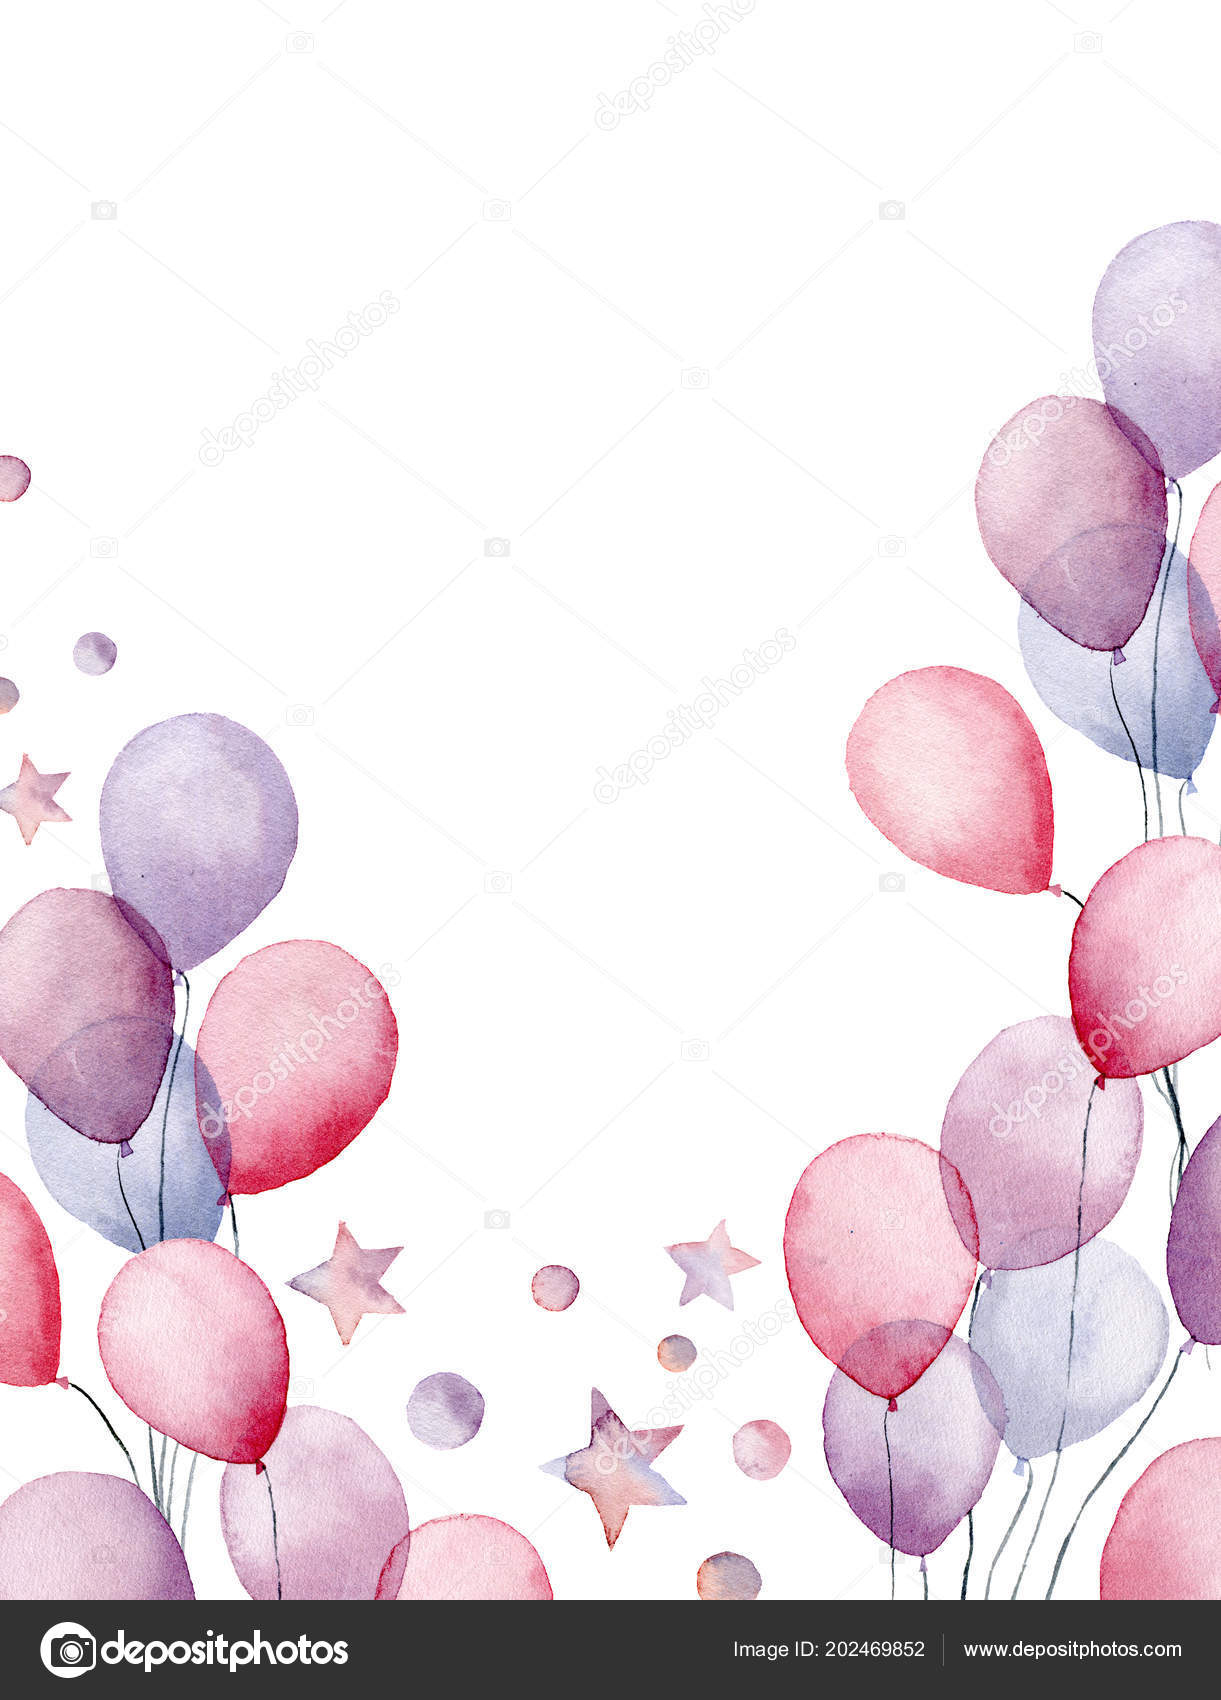 Watercolor Birthday Card Hand Painted Greeting With Air Balloons Stars And Confetti Isolated